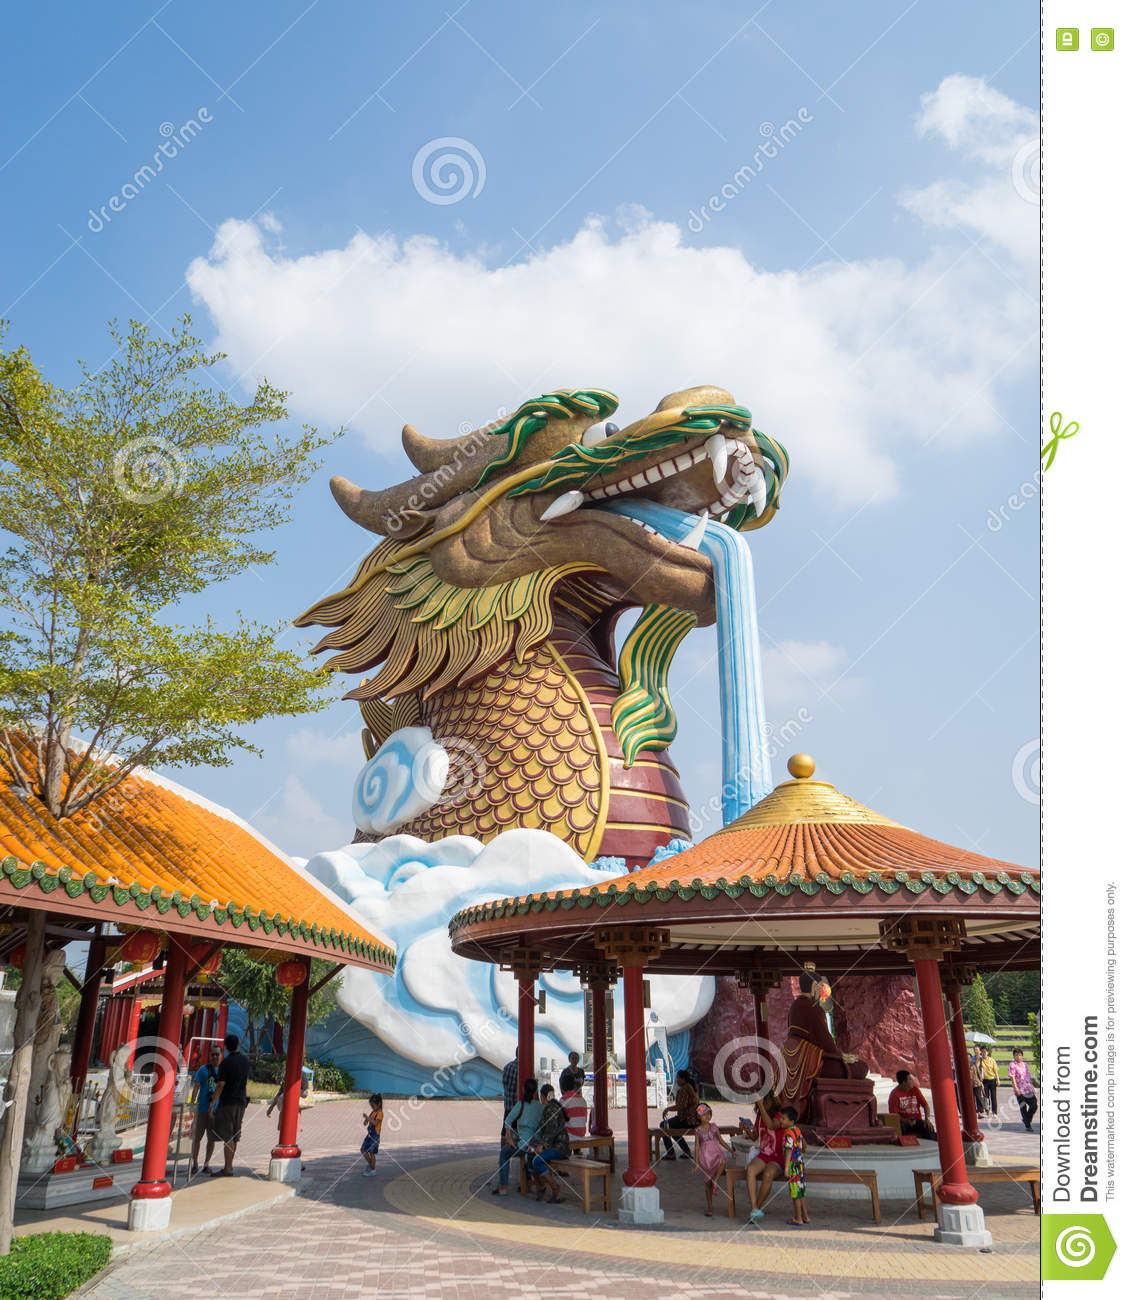 Giant Dragon Statue Giant Dragon Statue Editorial Photography Image Of Park